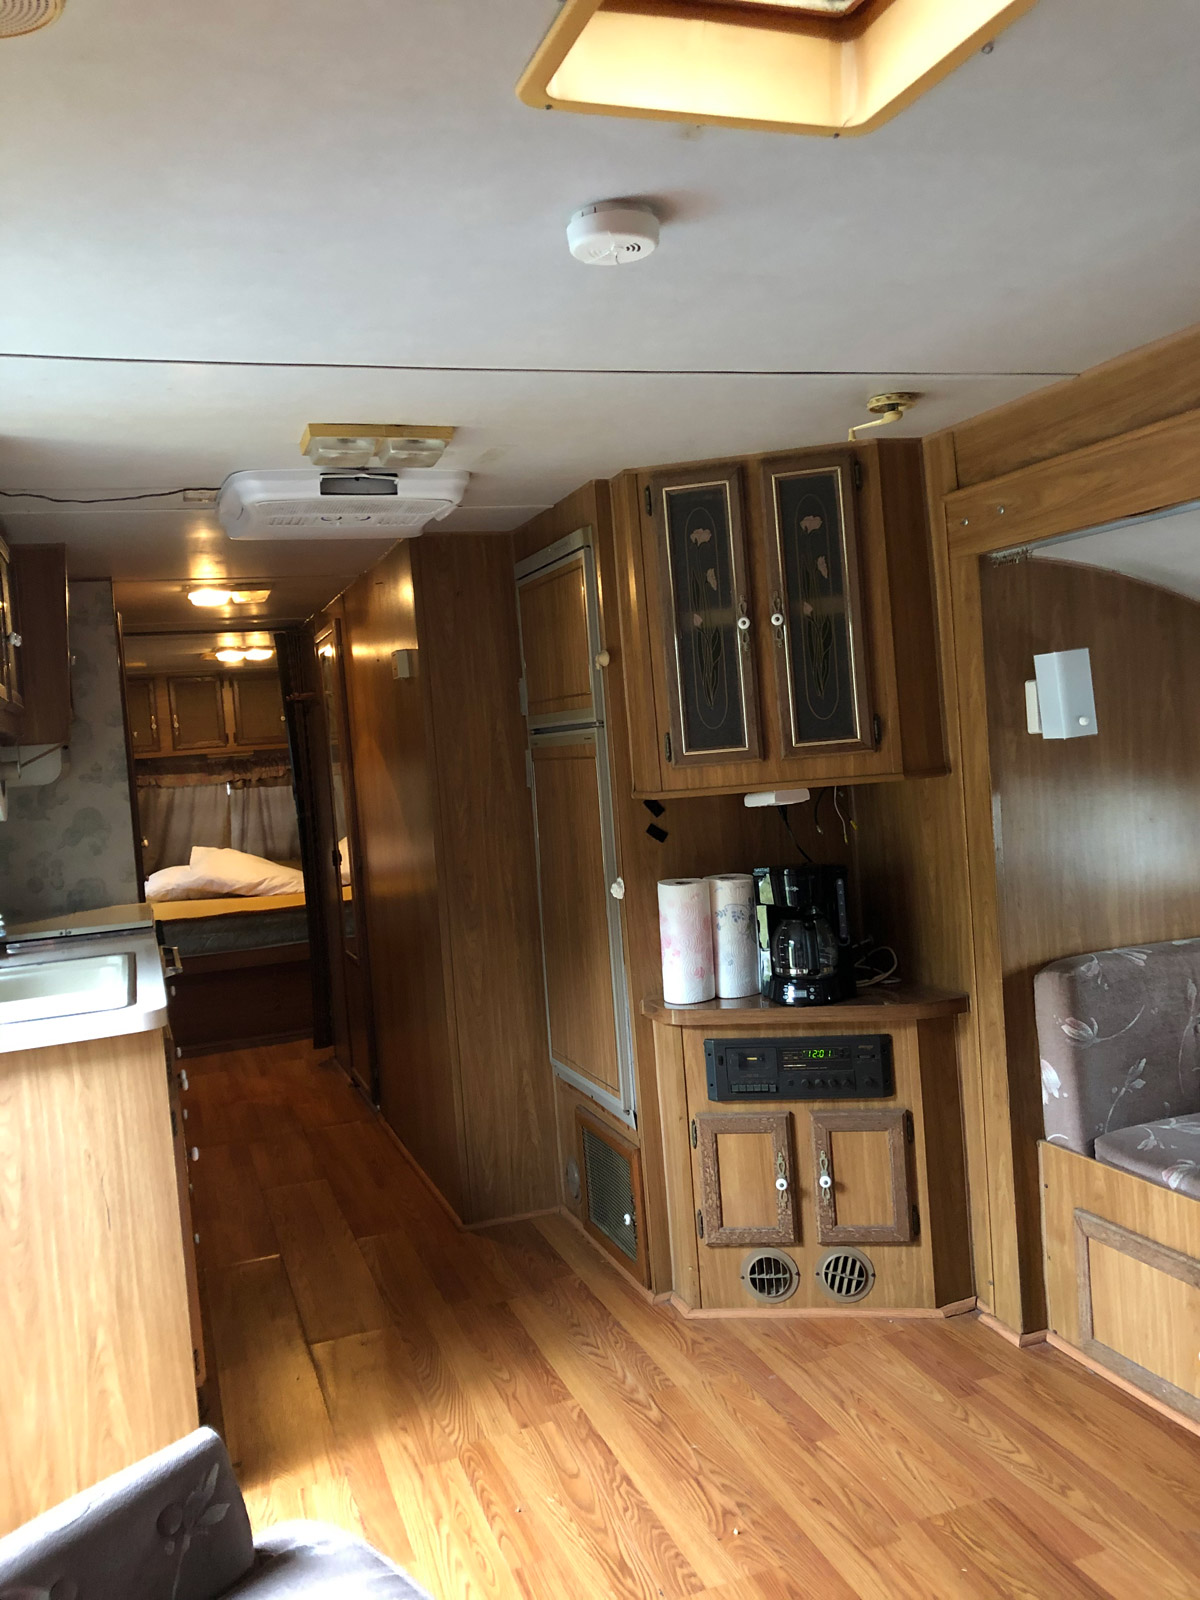 Rental Trailer located at Skydive City